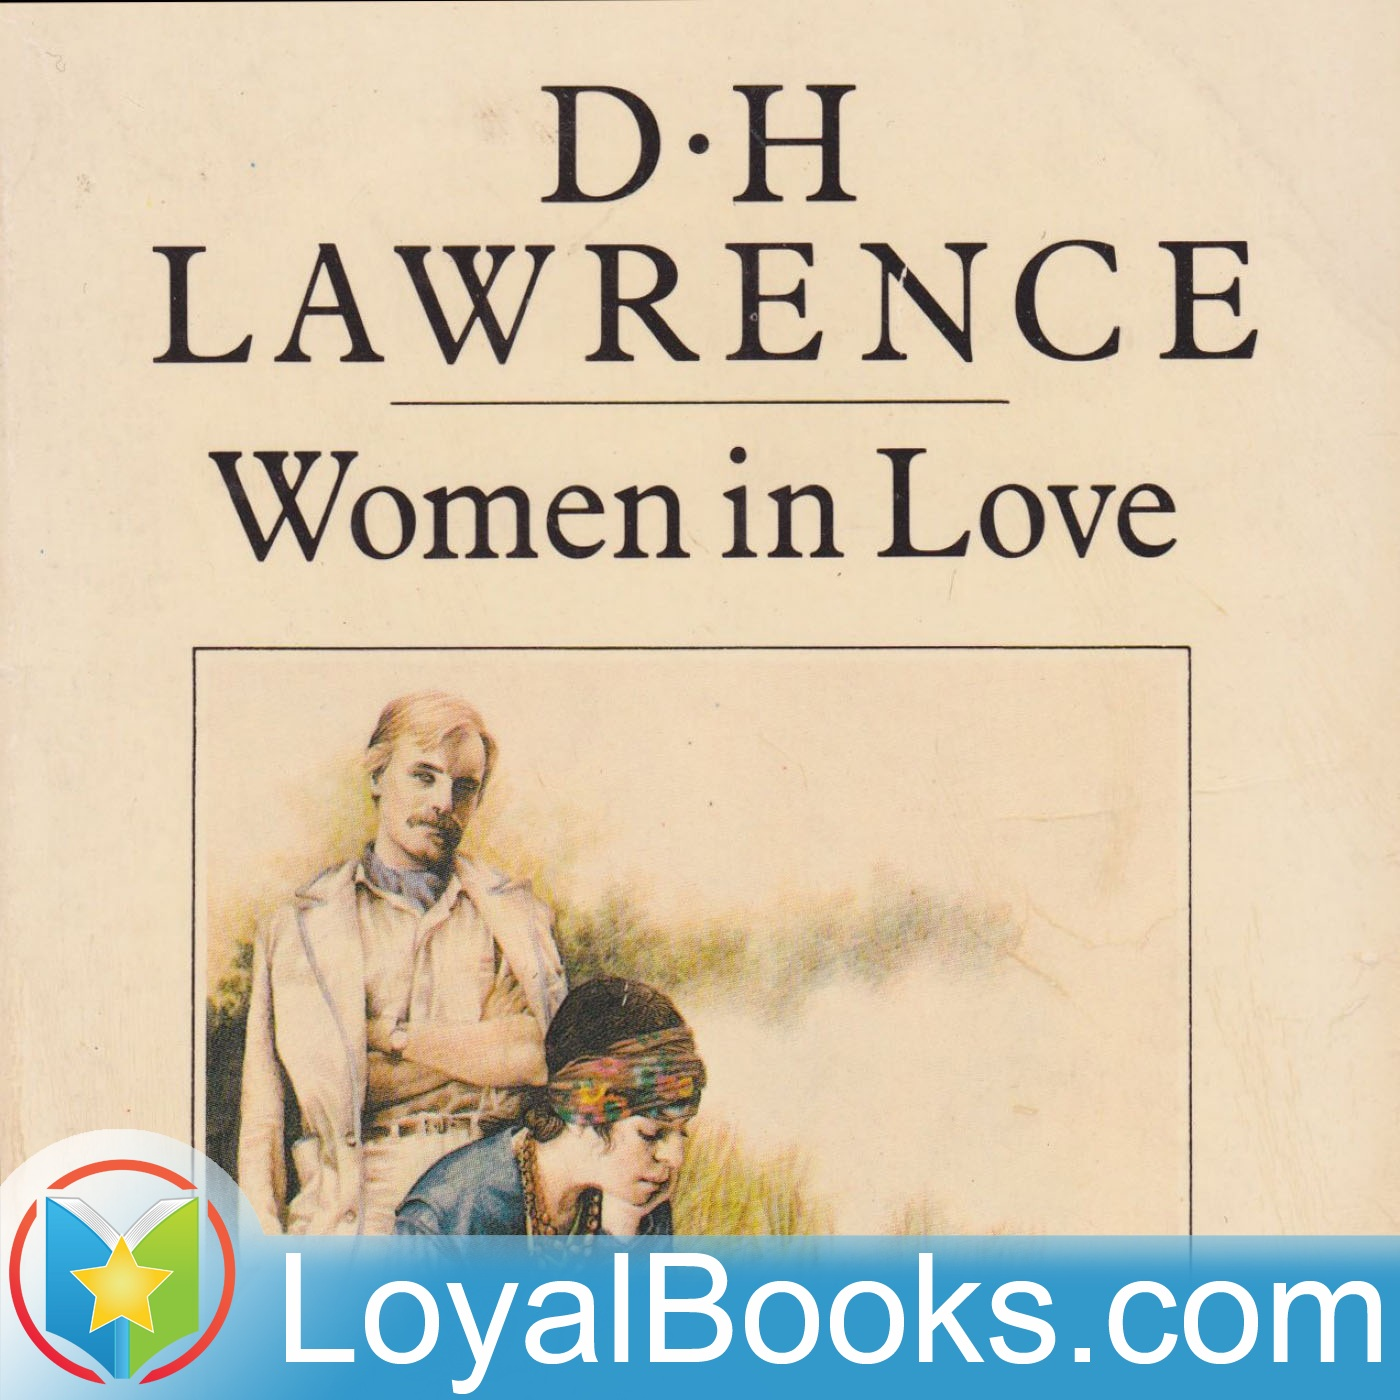 <![CDATA[Women in Love by D. H. Lawrence]]>